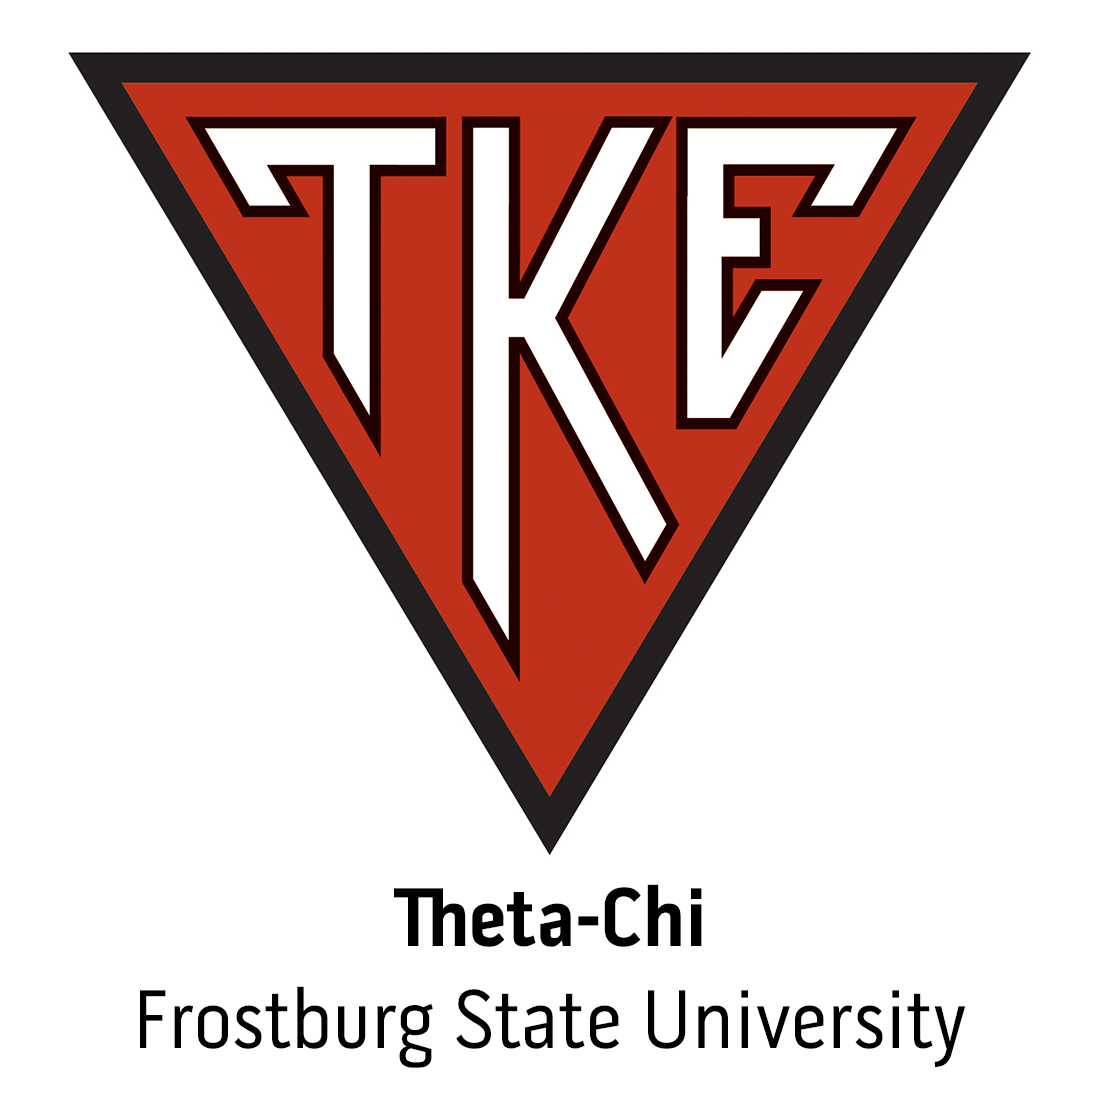 Theta-Chi Chapter at Frostburg State University